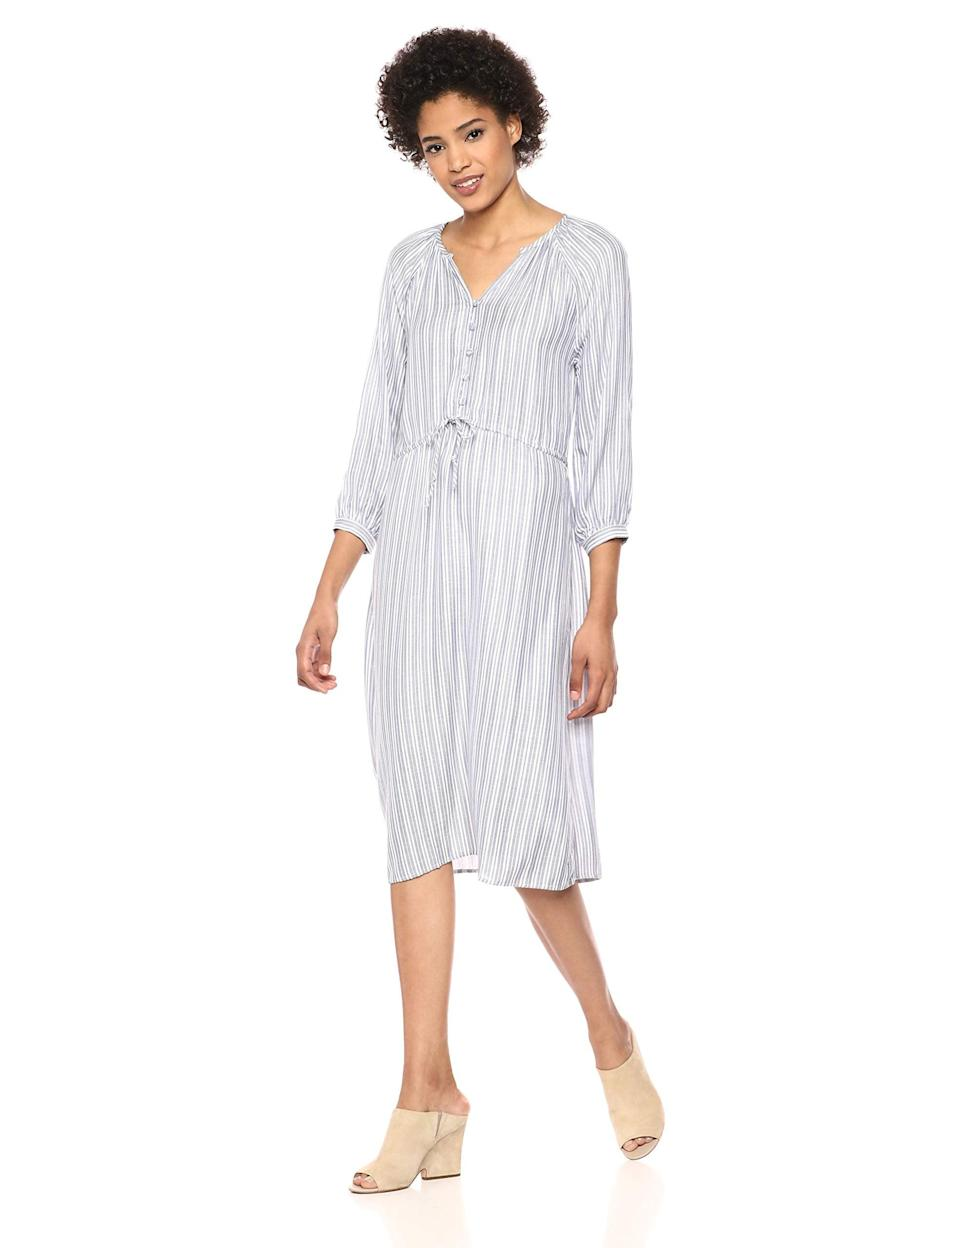 """<br><br><strong>Michael Stars</strong> Catalina Caitlyn Balloon Sleeve Striped Dress, $, available at <a href=""""https://amzn.to/2R9Ldav"""" rel=""""nofollow noopener"""" target=""""_blank"""" data-ylk=""""slk:Amazon"""" class=""""link rapid-noclick-resp"""">Amazon</a>"""